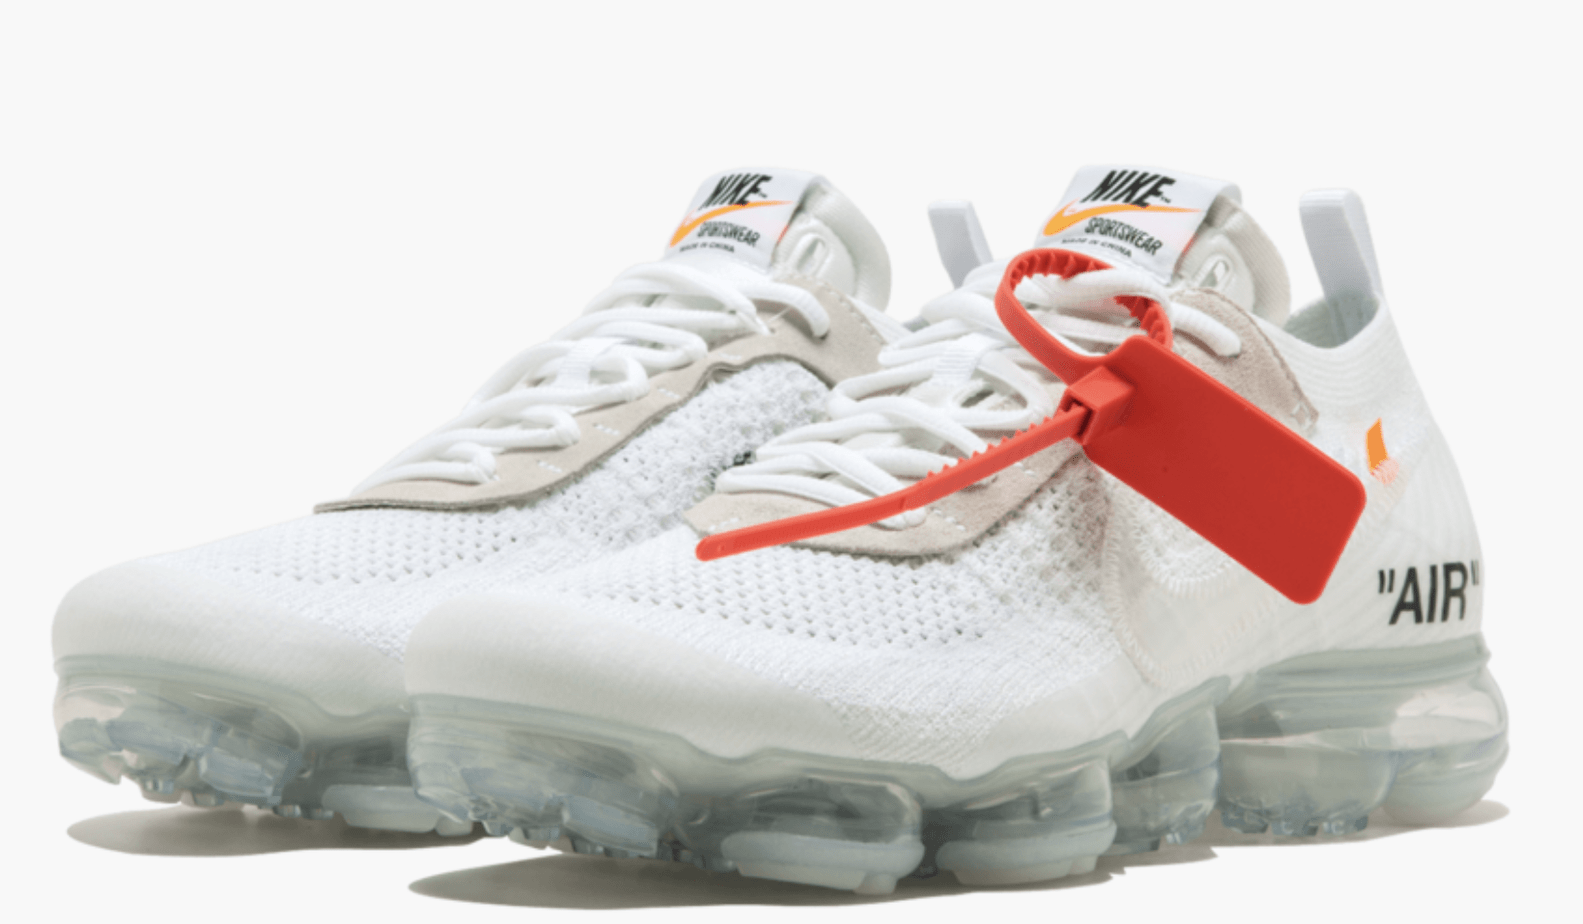 1dbad6242bd Off-White x Nike Air Vapormax Flyknit White Release Date  April 14th